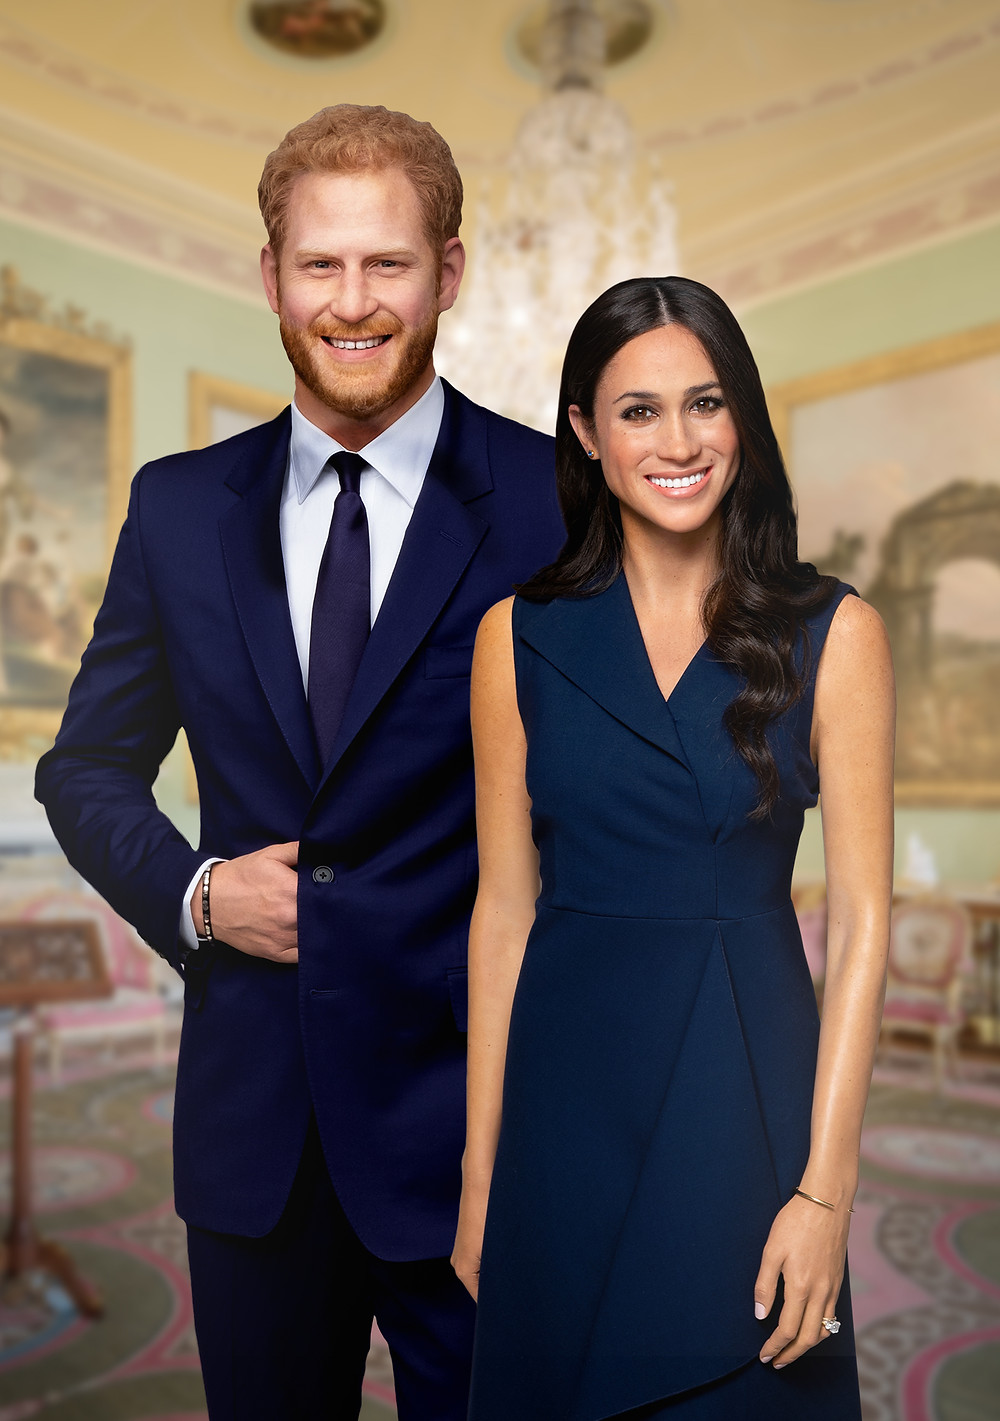 Prince Harry and Meghan Markle's brand new wax figures – designed specifically for Madame Tussauds Sydney